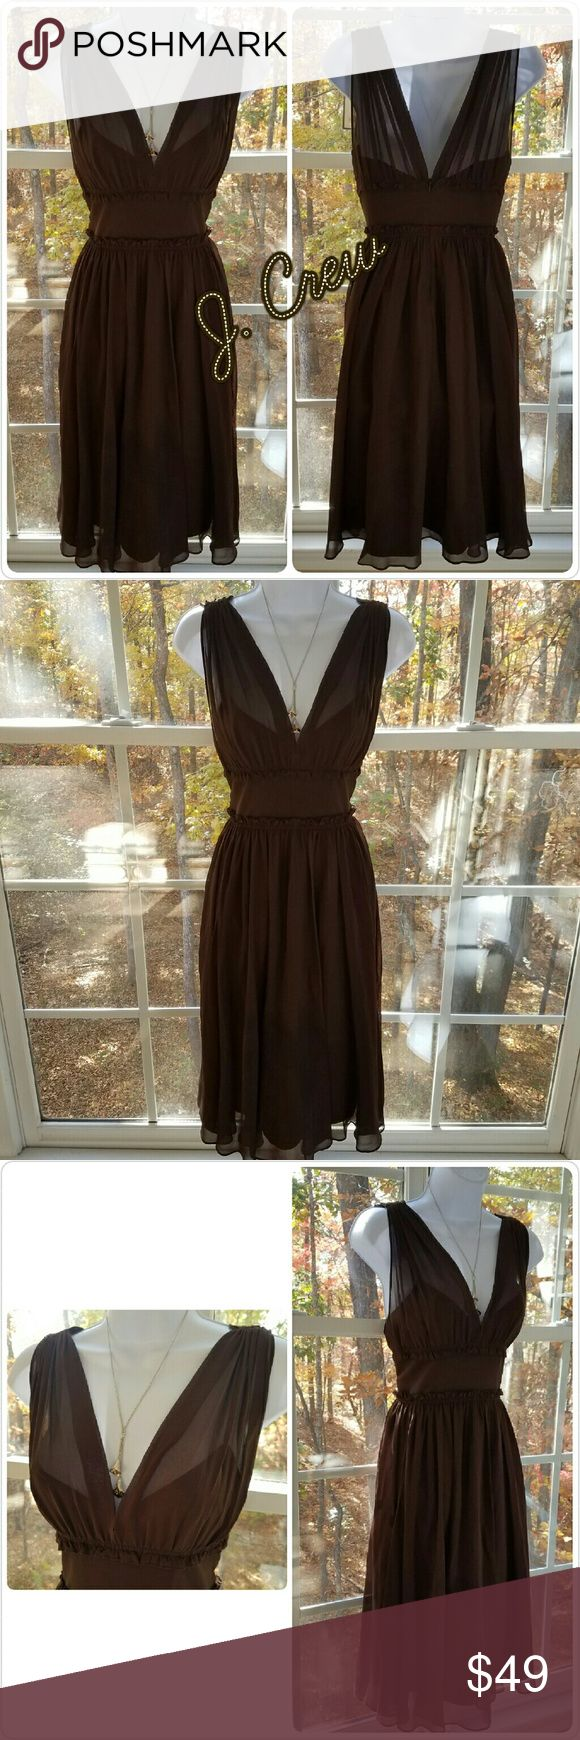 🆕J. Crew Chocolate Brown Elegant Silk Party Dress Gorgeous chocolate brown party dress from J. Crew.   100% Silk Dry Clean Only  100% Polyester Lining  Sleeveless  Back zippered closure  Measurements to be added   Please let me know if you have any questions. Thank you for looking! Xoxoxoxo J. Crew Dresses